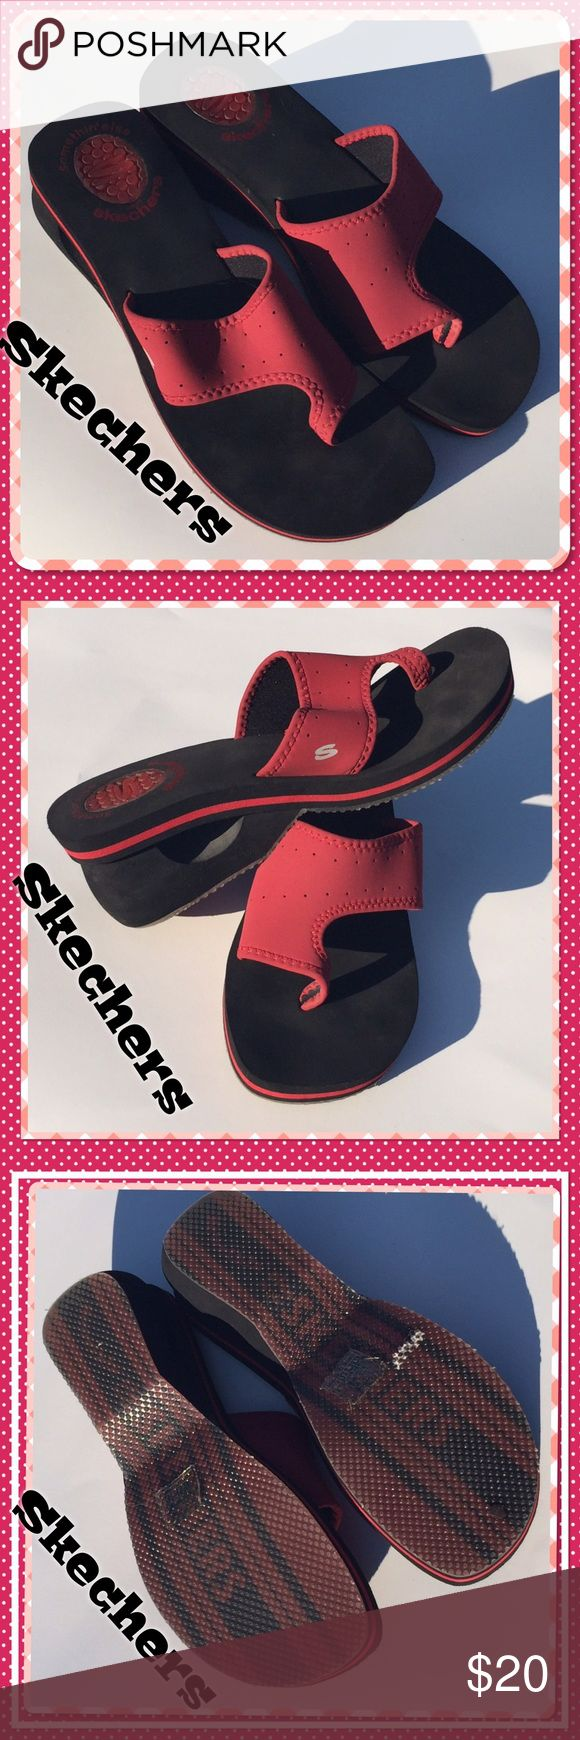 Brand new: stylish red Skechers  sandals Step out in these stylishly unique Skechers: Size 11, black & red sandals; surprisingly comfortable, perfect for that day at the lake, or any occasion where you can let your hair down & just be uniquely you Skechers Shoes Sandals